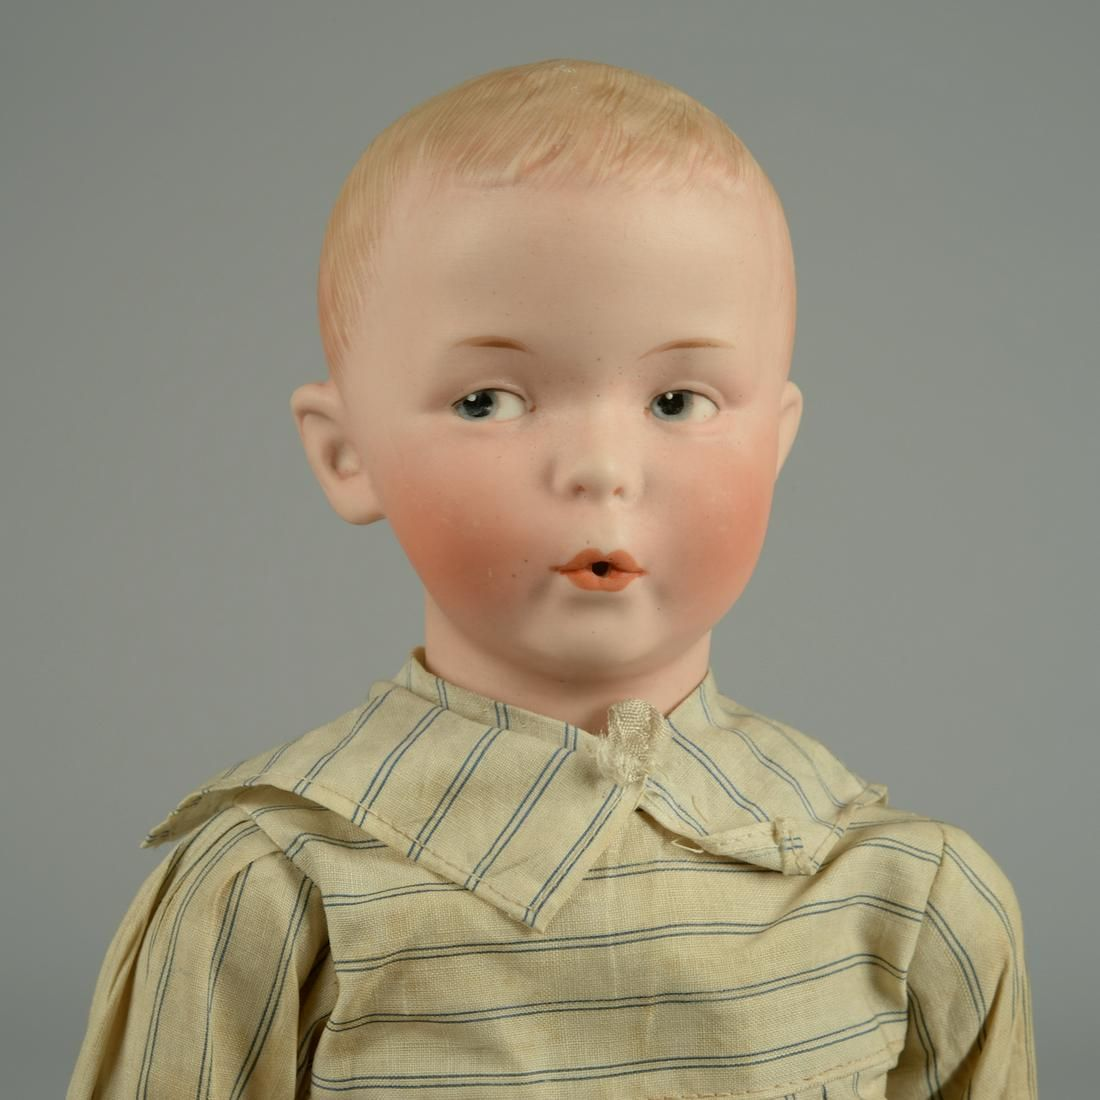 HEUBACH 8774 'WHISTLING JIM' CHARACTER DOLL 15 IN.